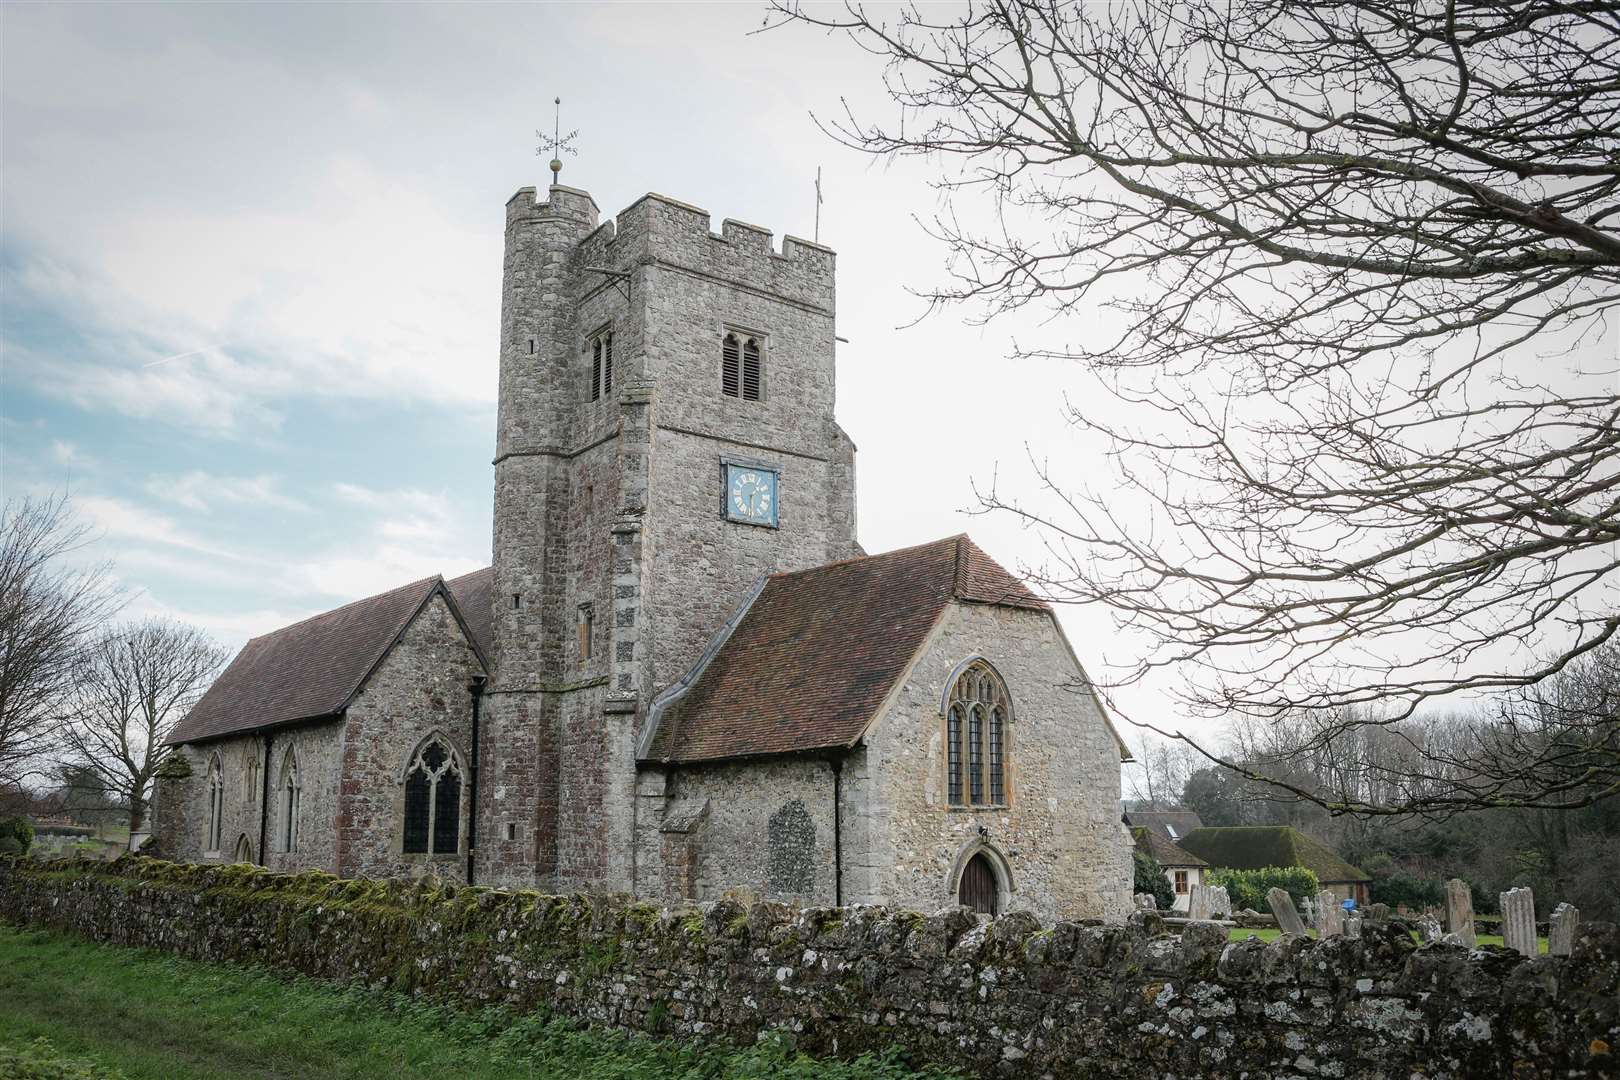 St Mary's and All Saints Church, Boxley, was targeted by thieves